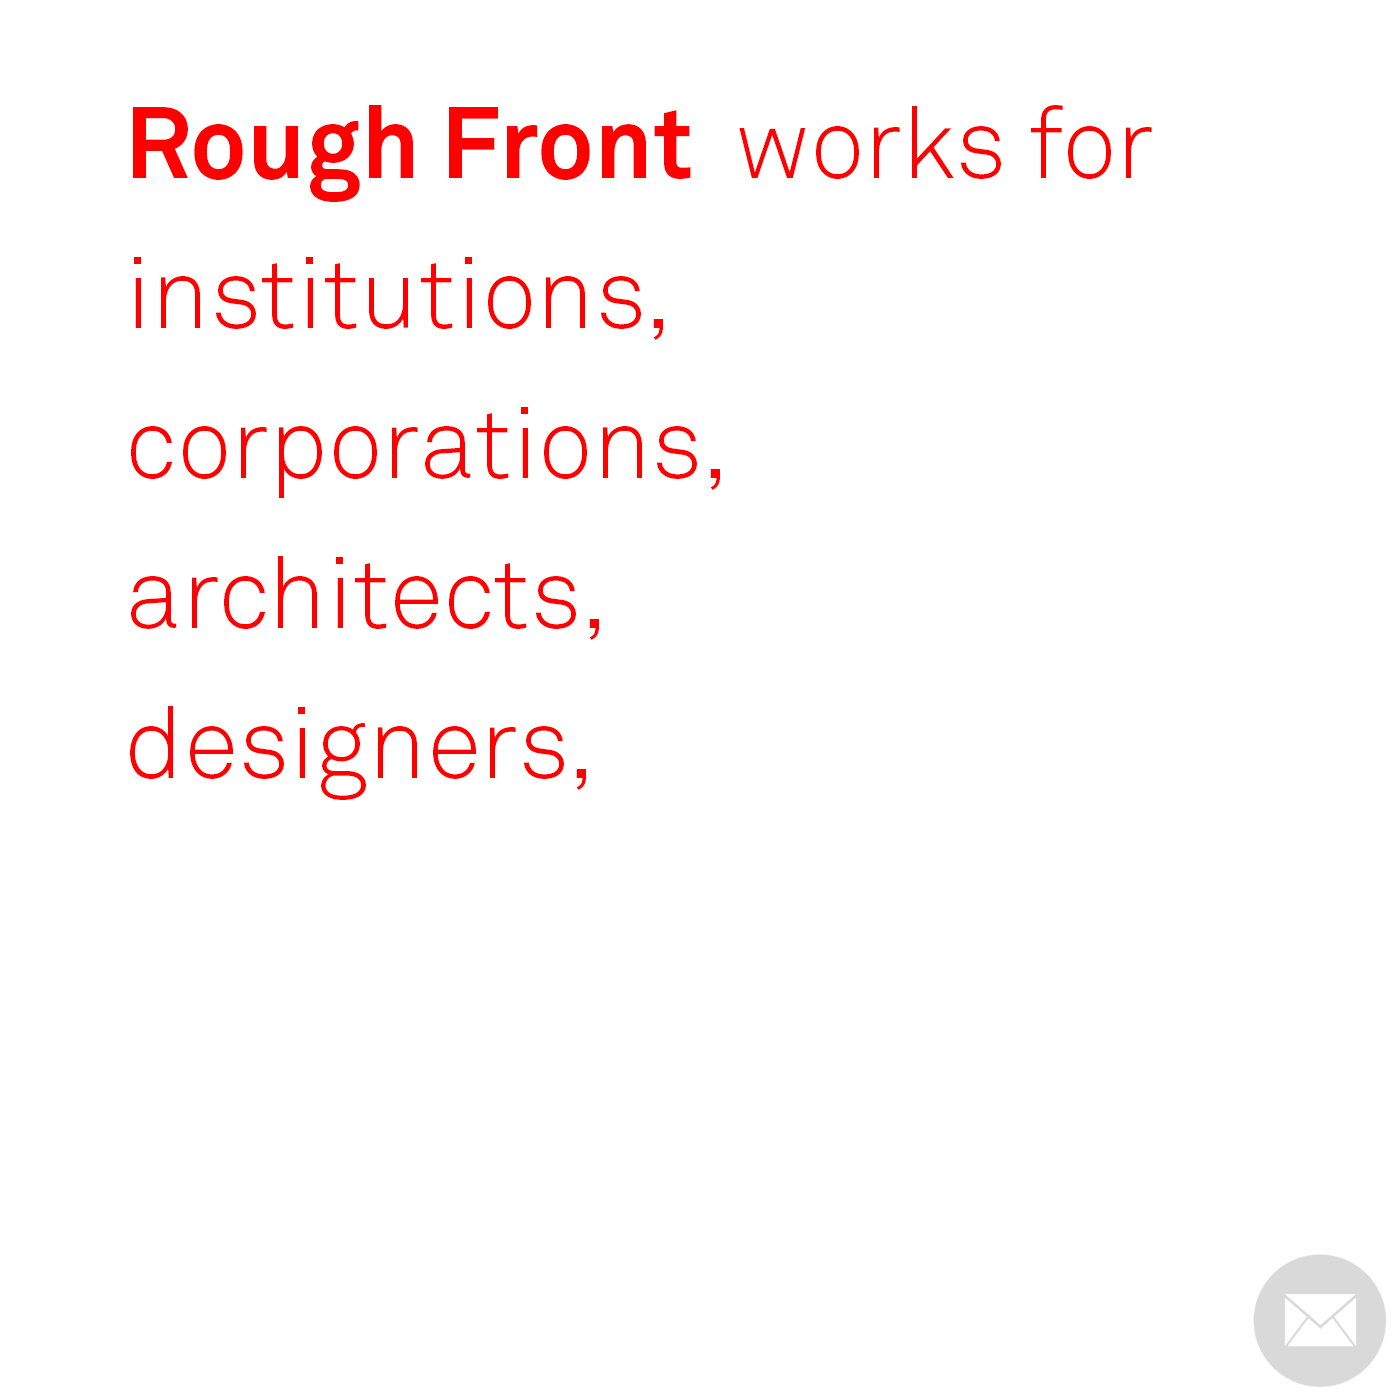 Rough Front is -envelope- 014.jpg